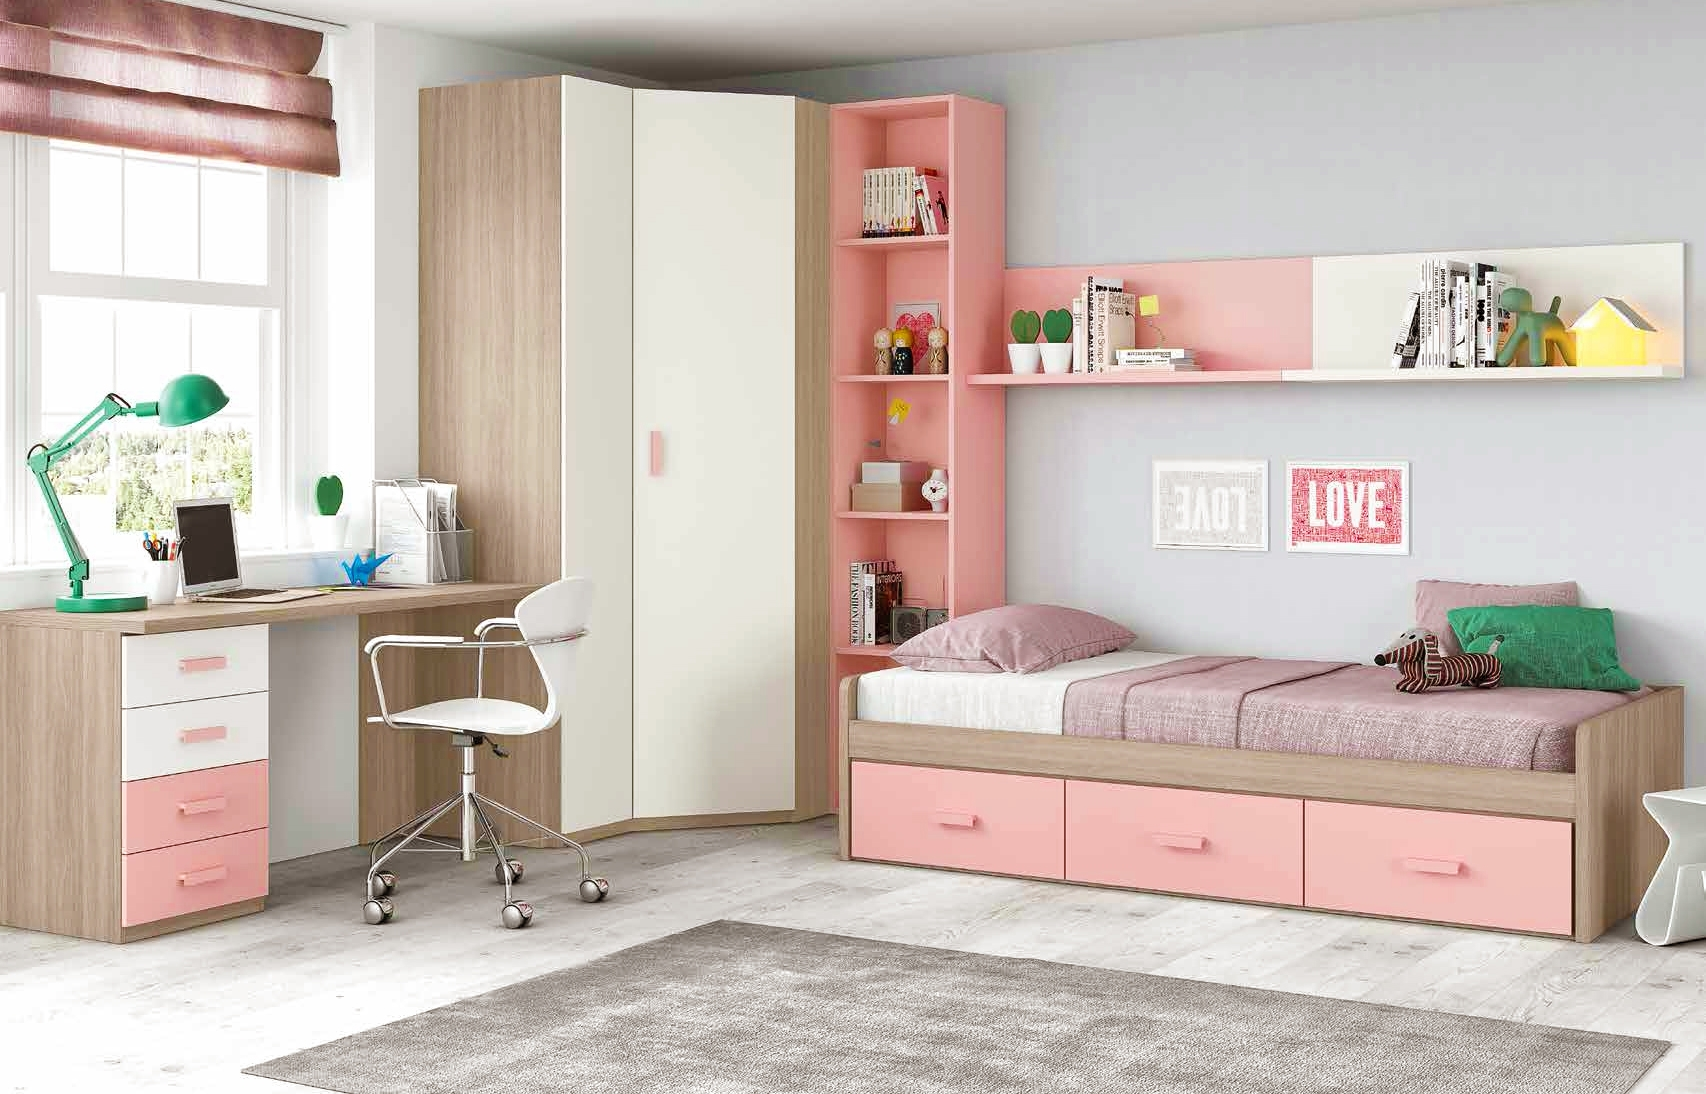 Photo de chambre d ado fille poitiers design for Exemple peinture chambre ado